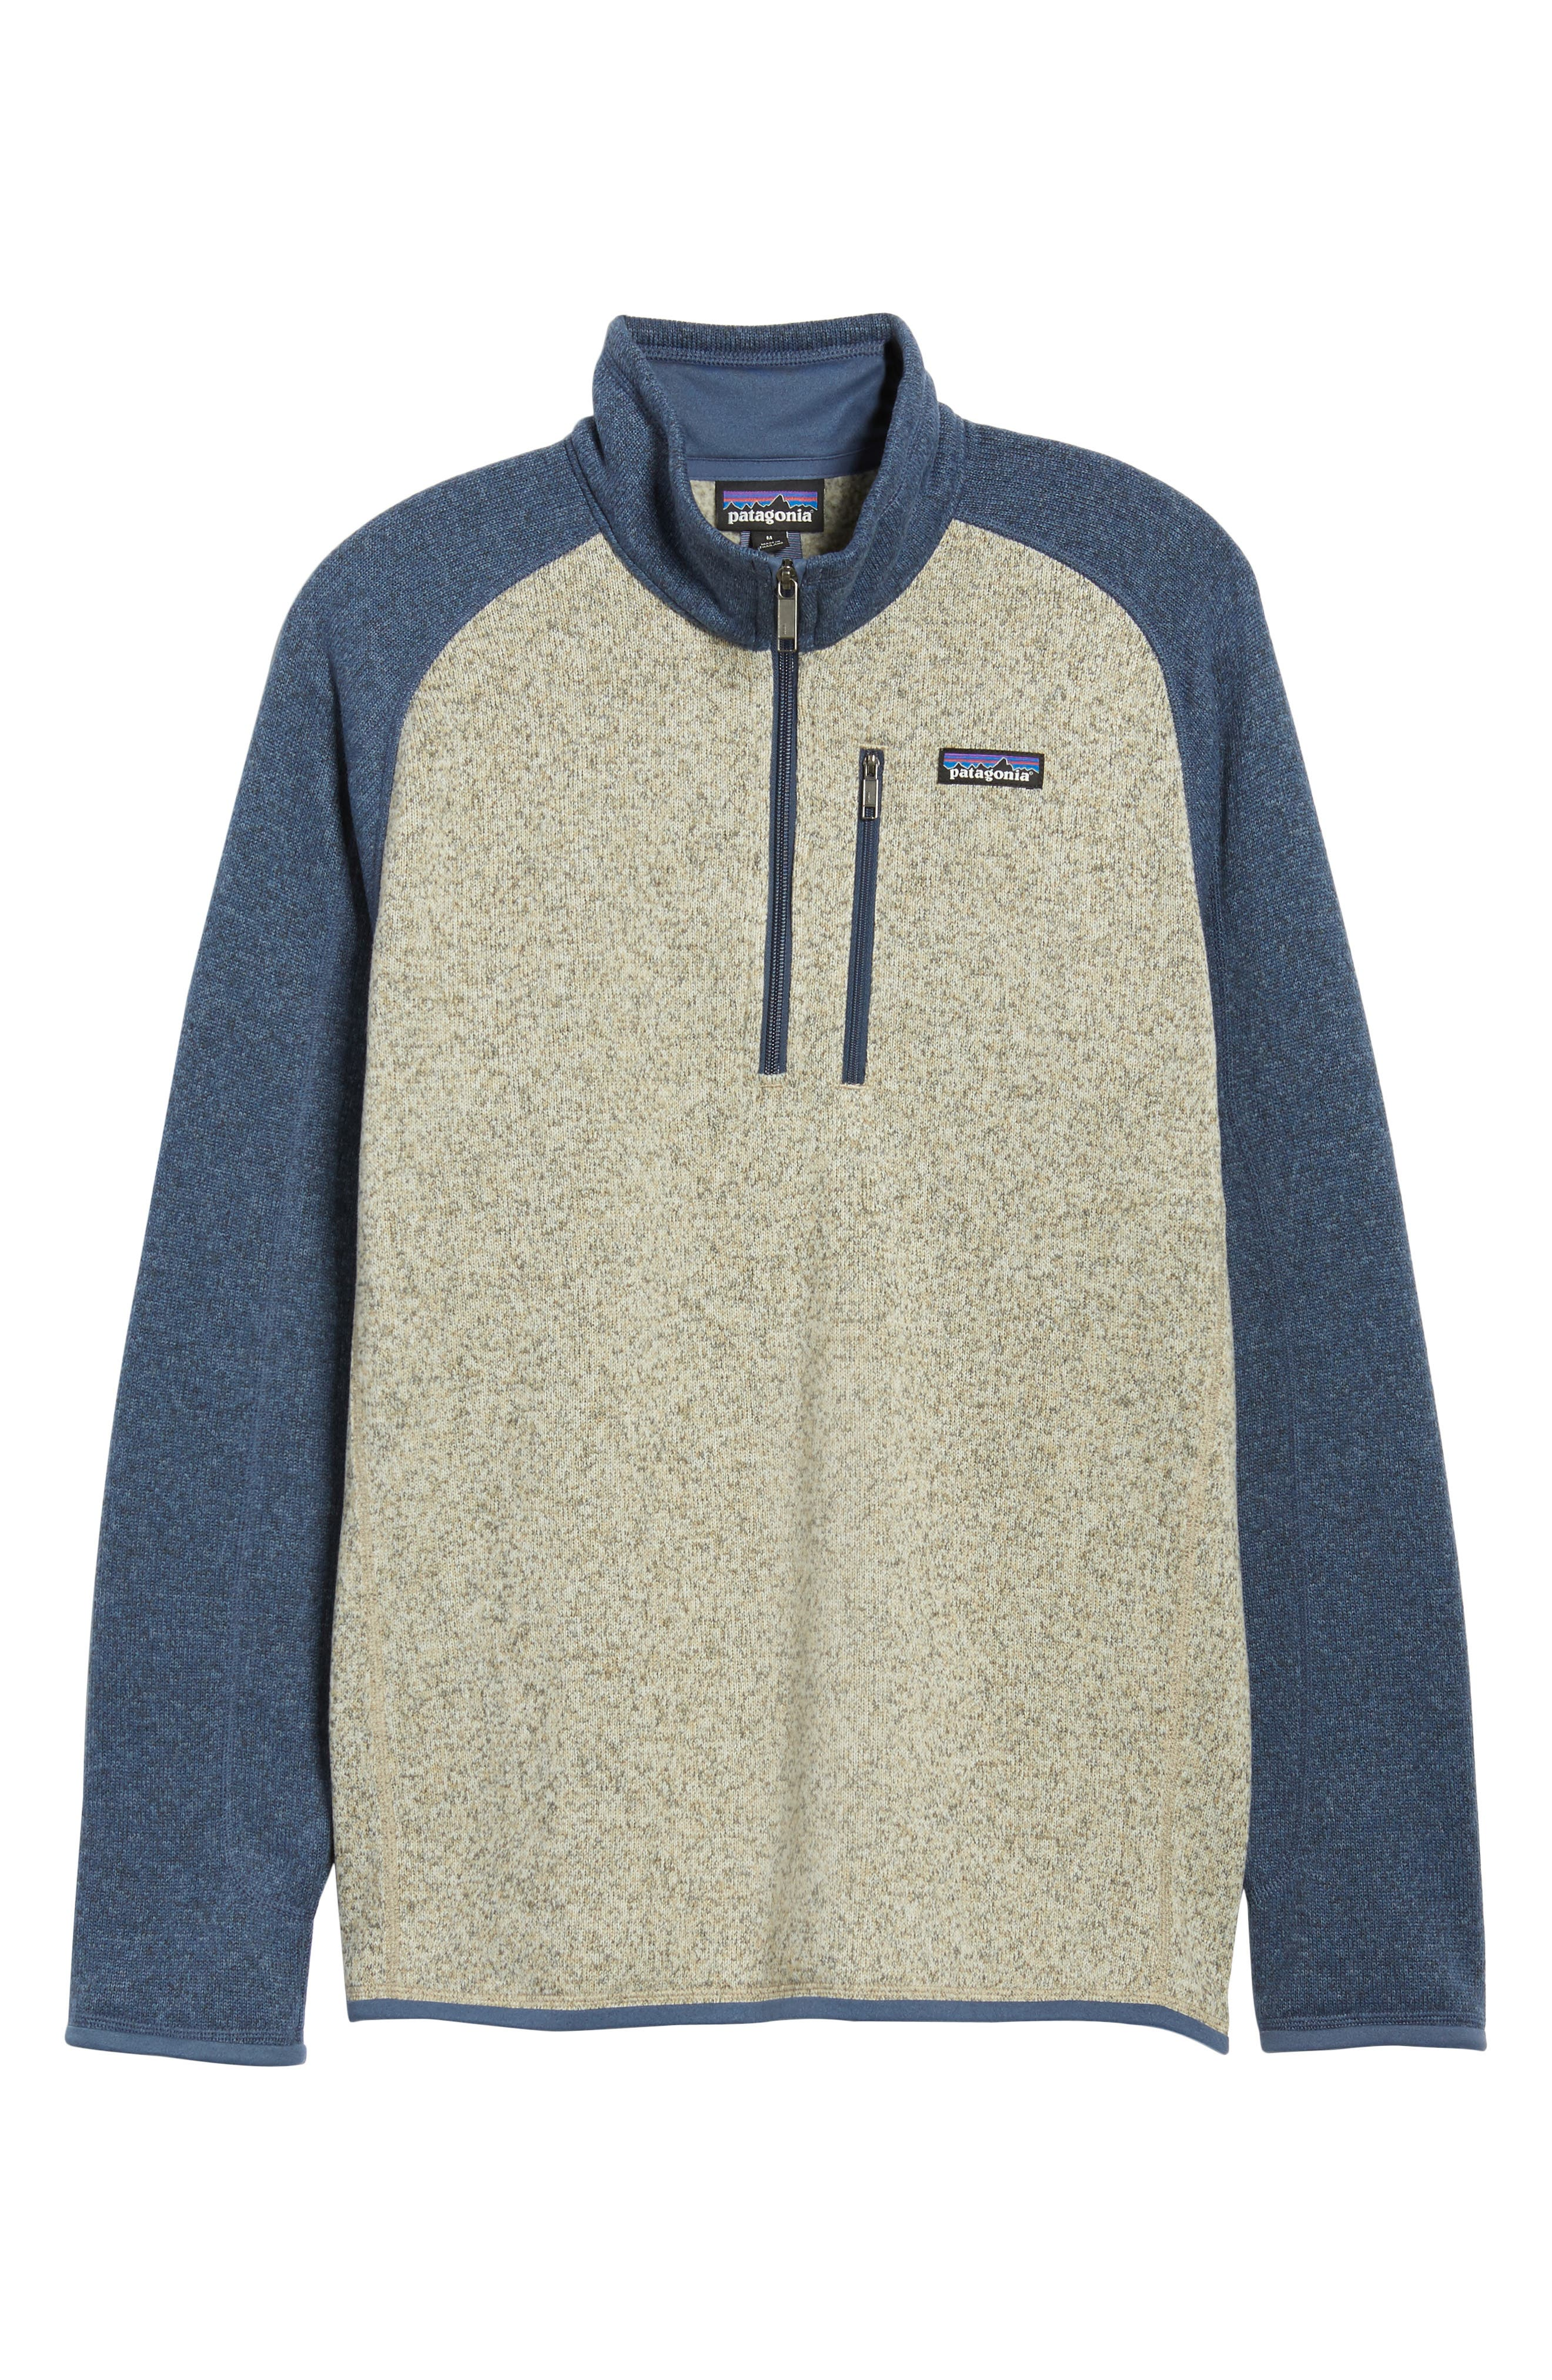 PATAGONIA, Better Sweater Quarter Zip Pullover, Alternate thumbnail 7, color, BLEACHED STONE W/DOLOMITE BLUE